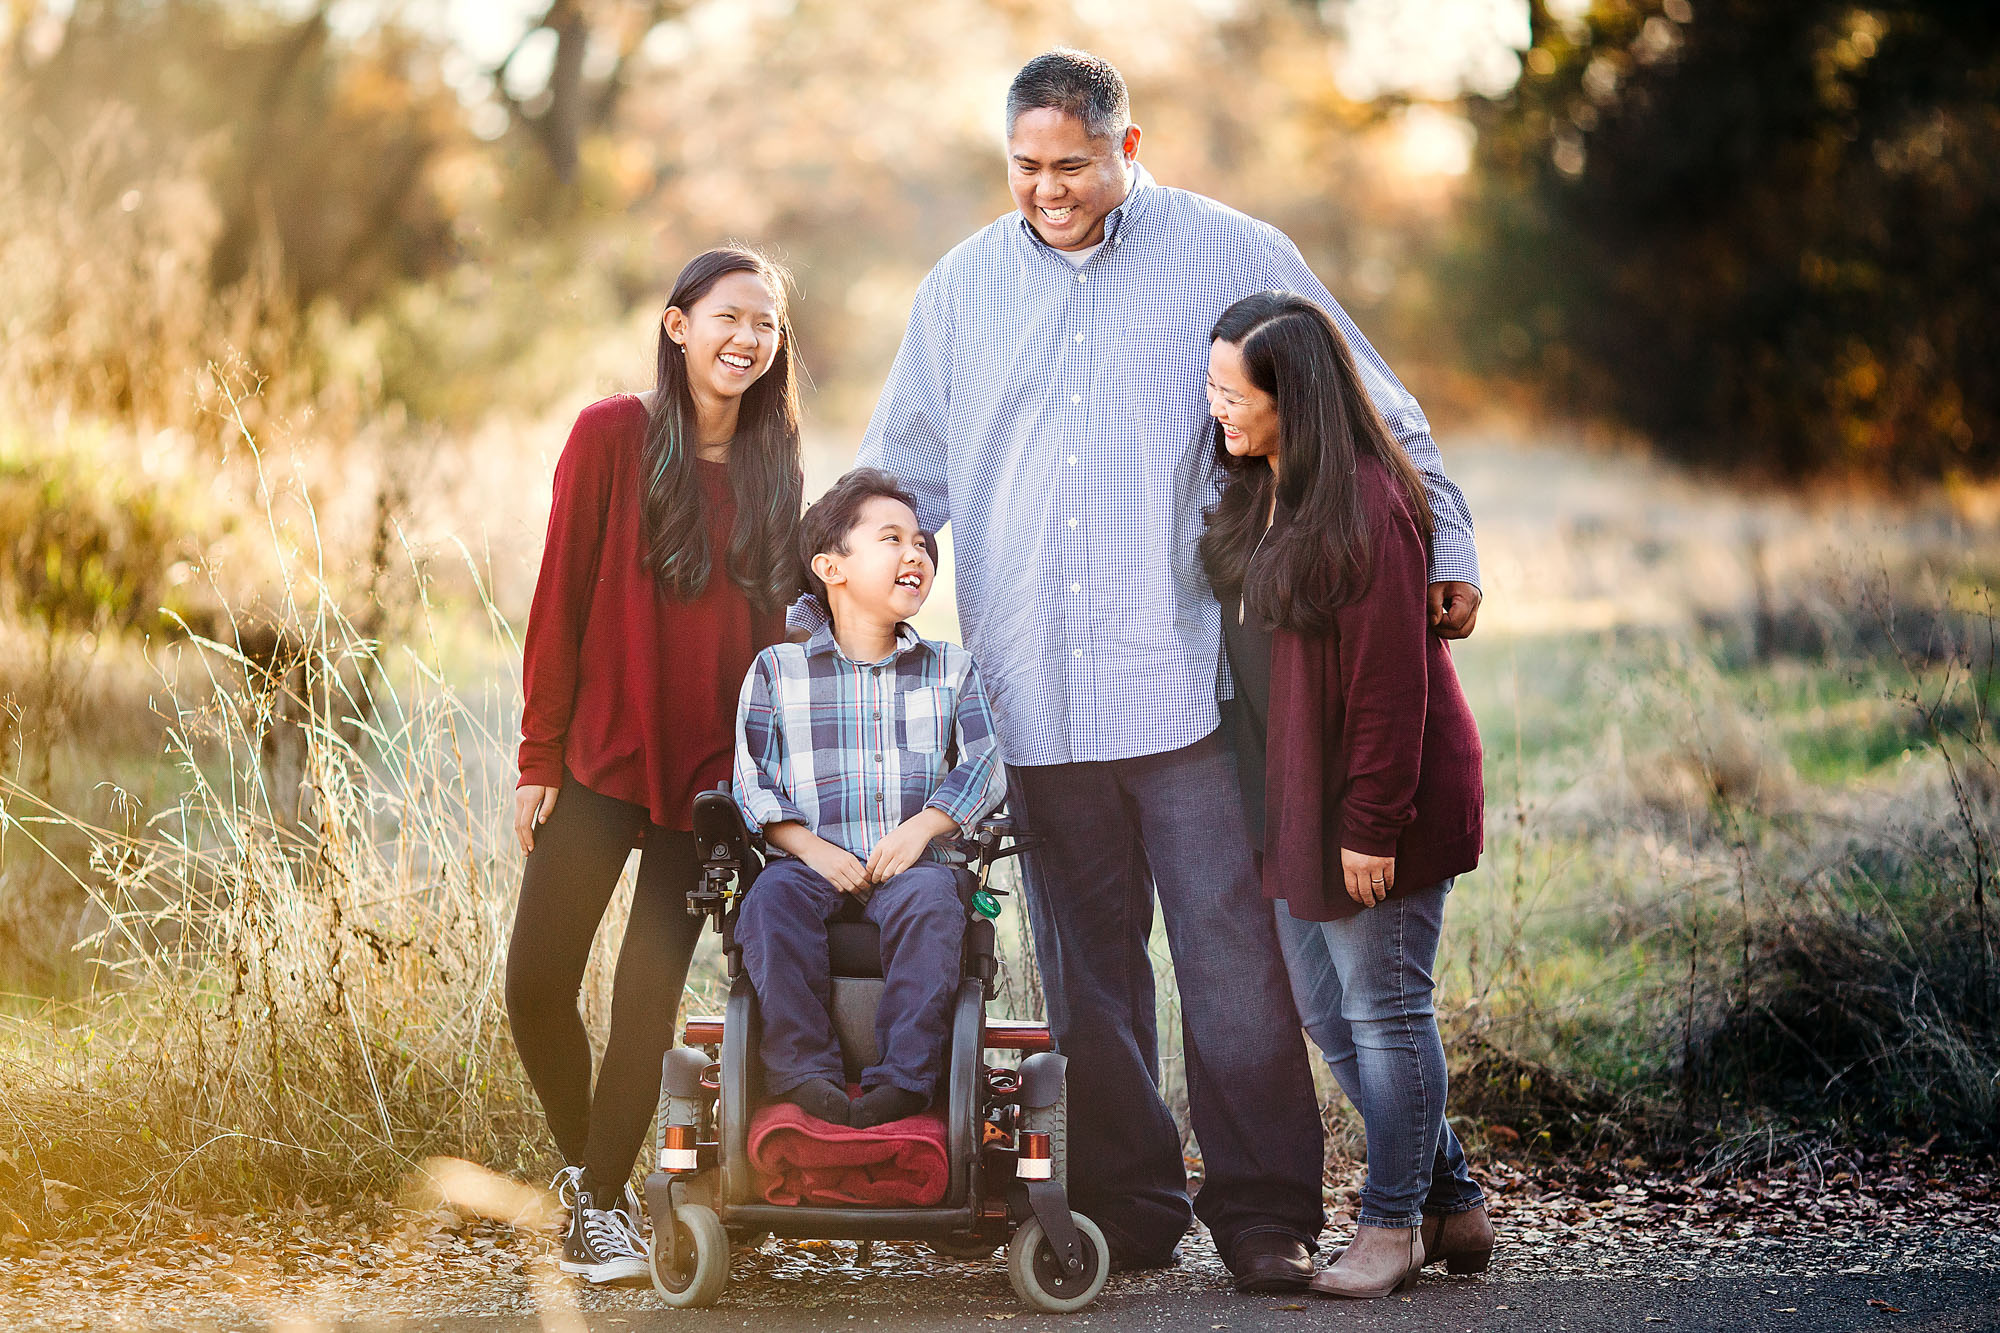 A family of four laughs together during a lifestyle photo session with photographer Amy Wright in Roseville, California.